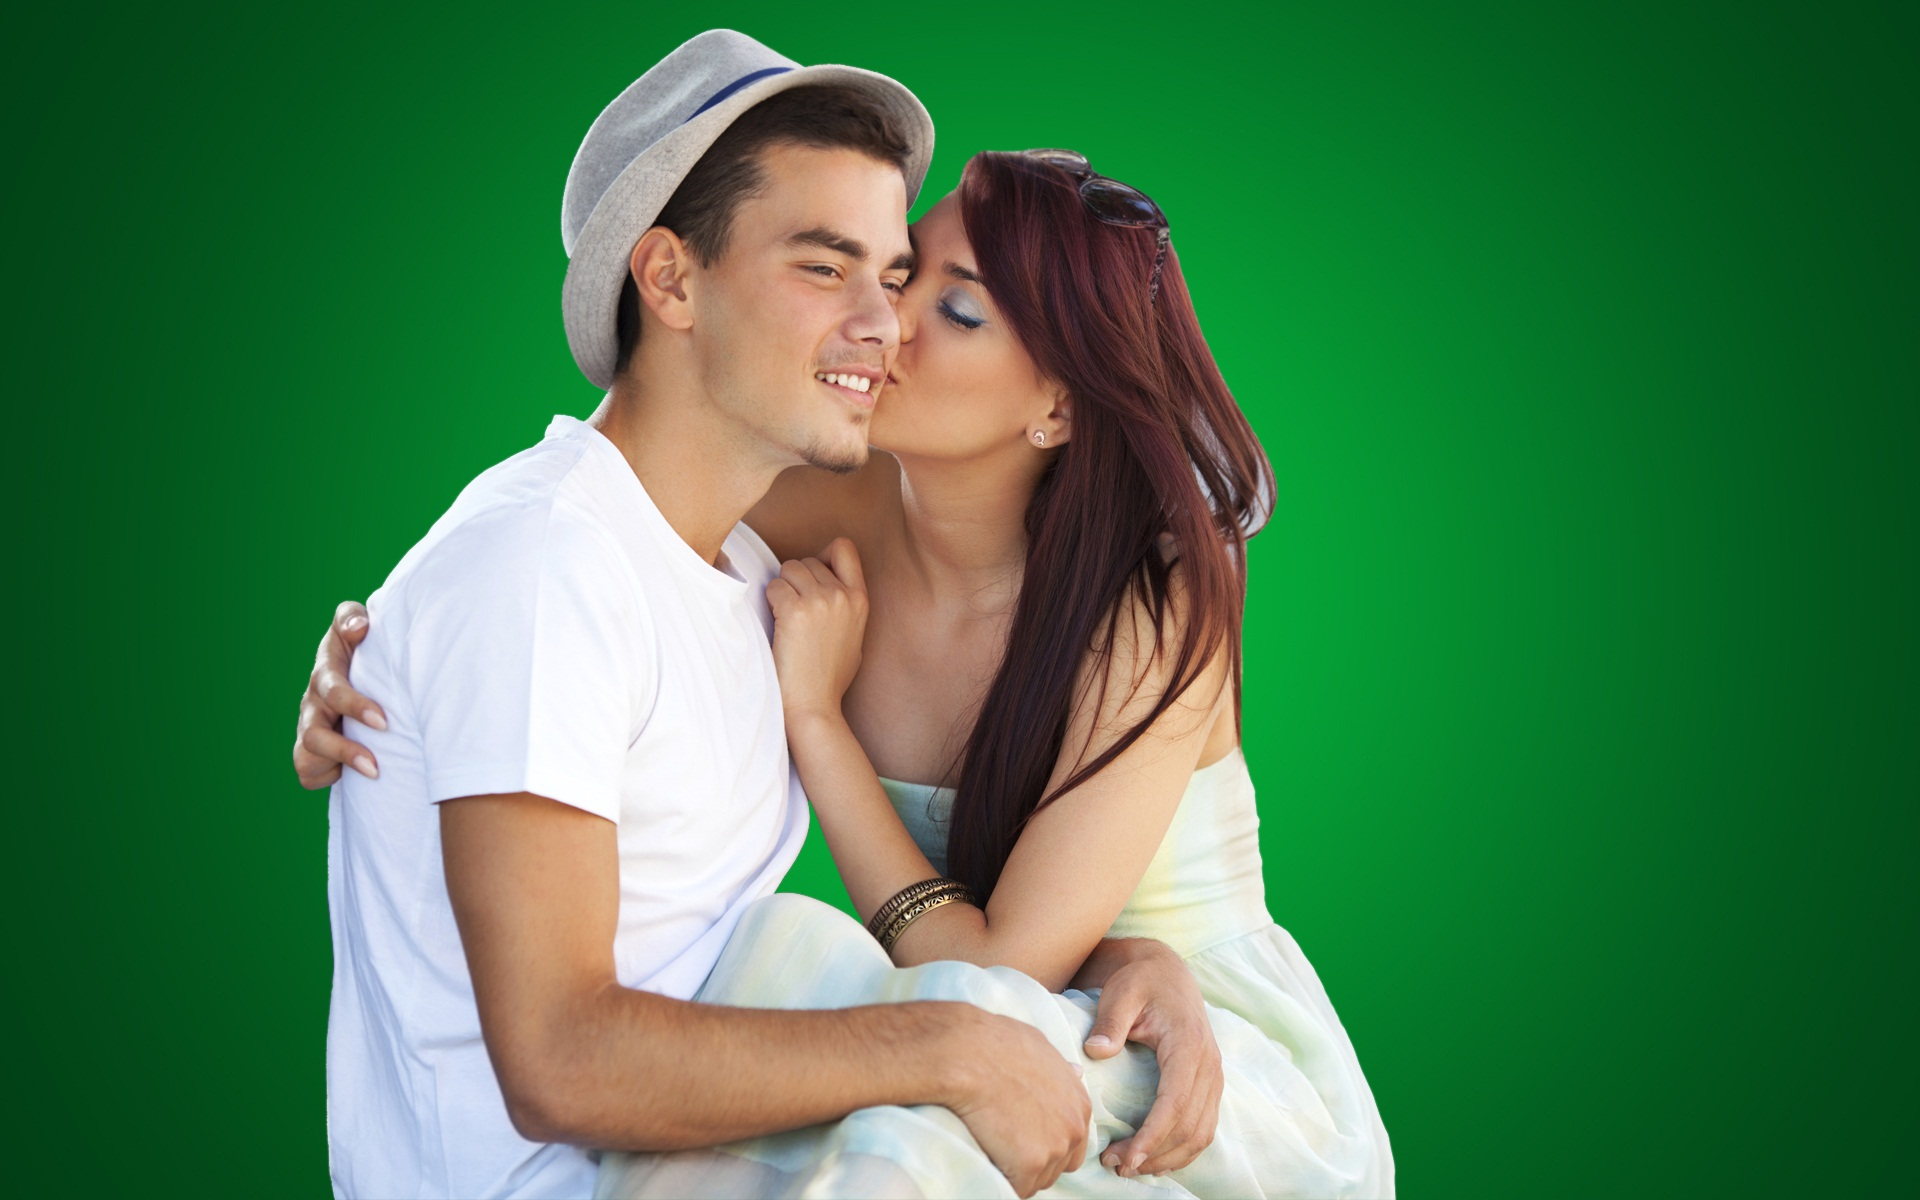 Download Hd Wallpapers Of Love Couple Passionate Lip To Lip Kiss